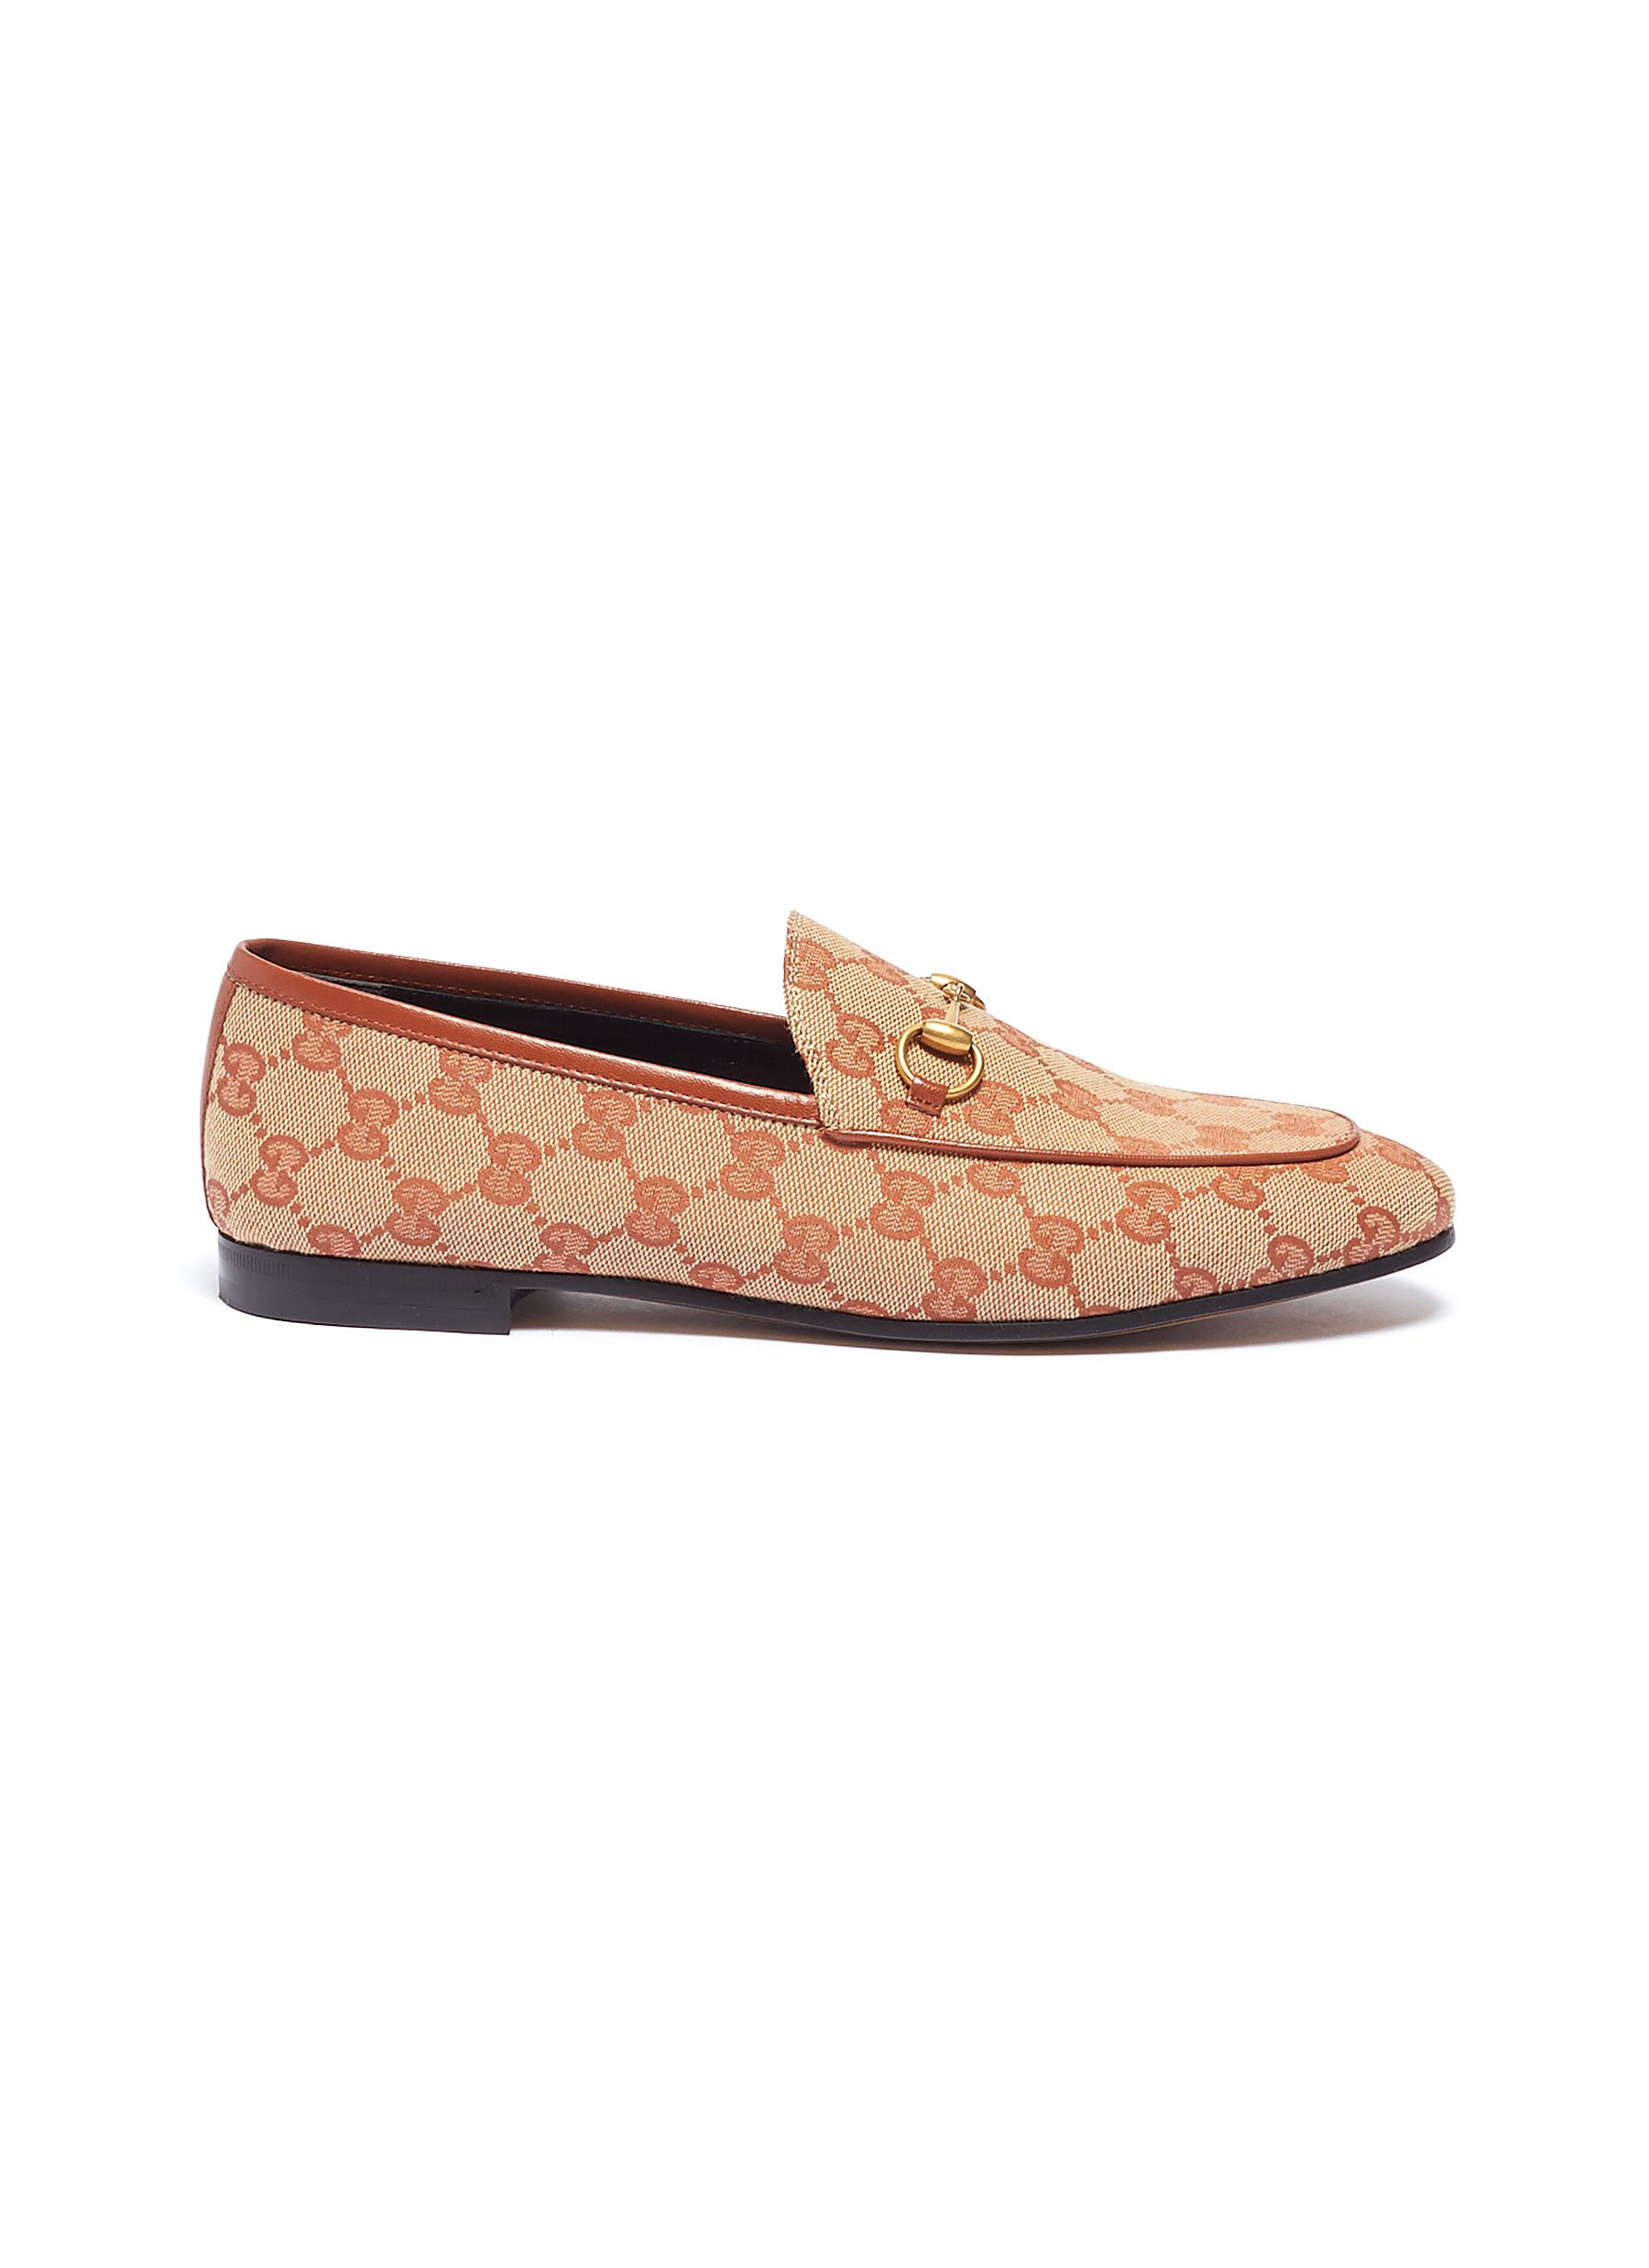 25fb576bef9 Gucci.  Jordaan  GG embroidered canvas horsebit loafers